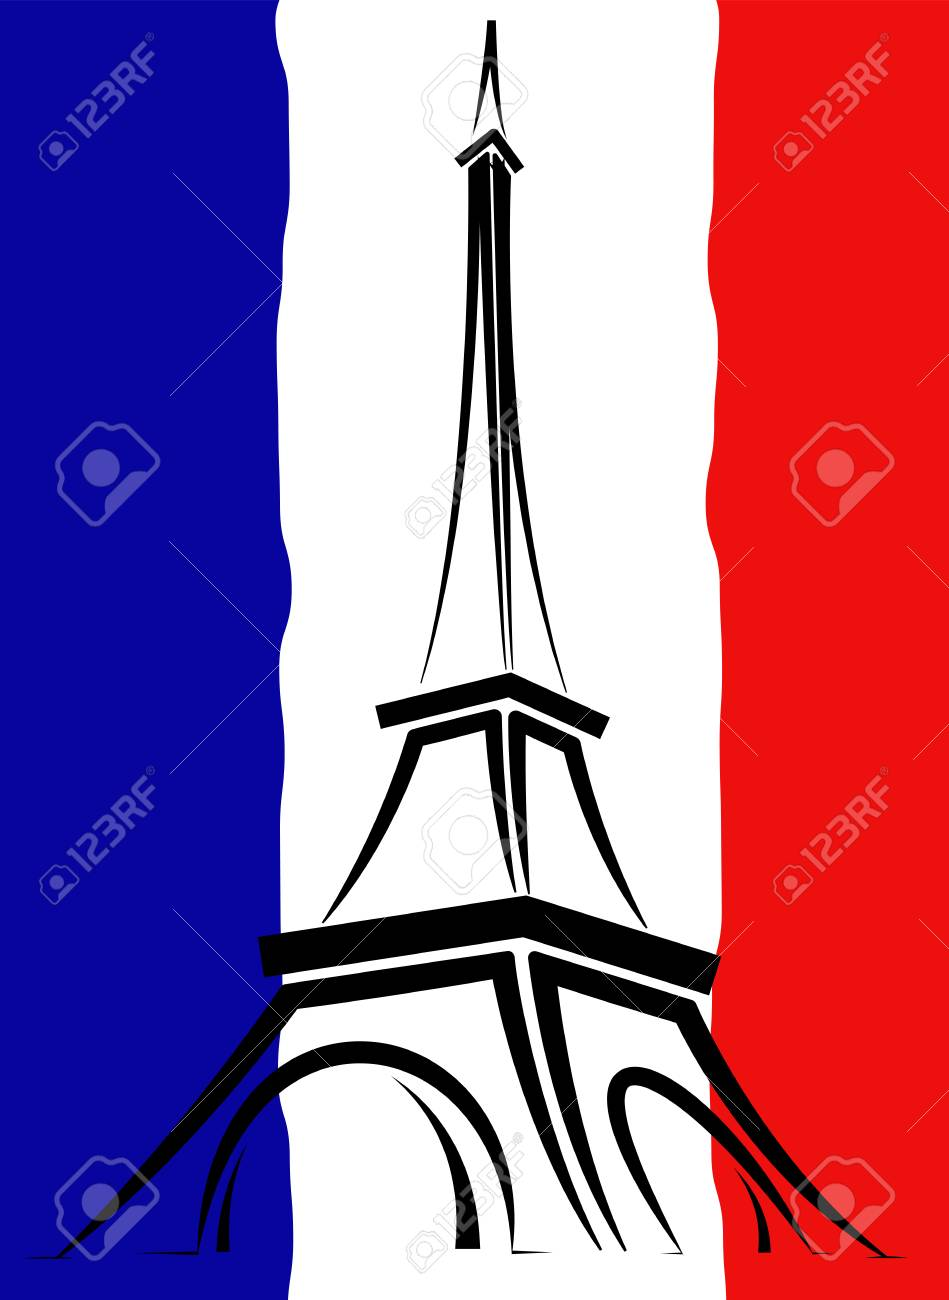 Abstract logo or sign for France, Paris and Eiffel Tower. - 121639843